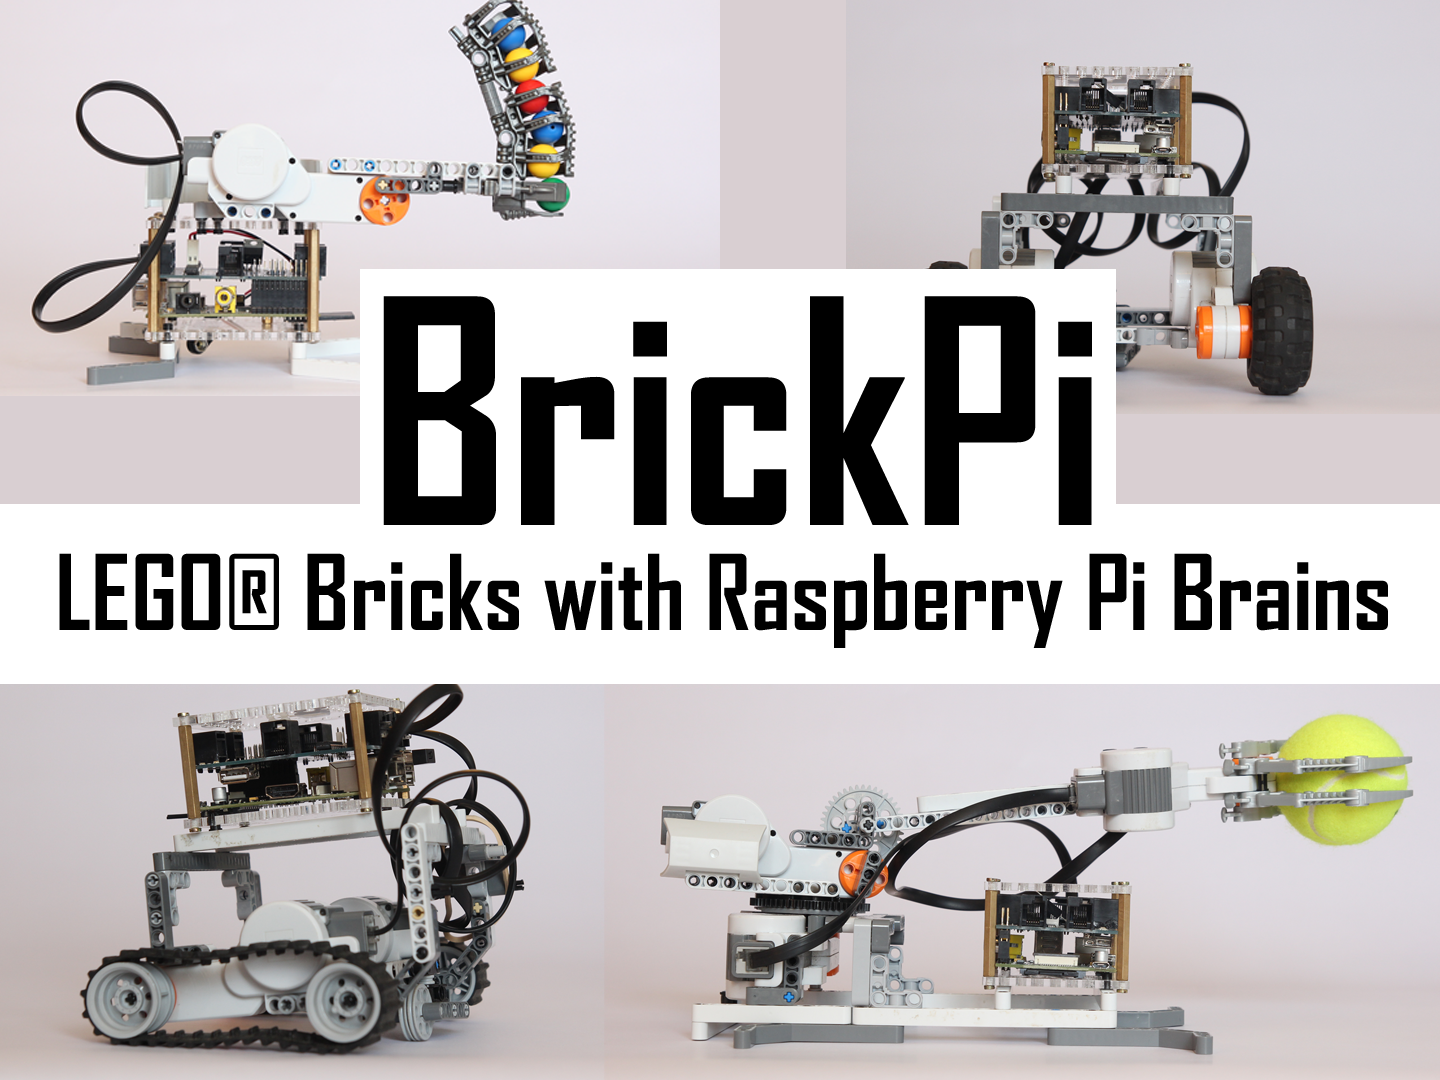 Lego Bookreader: Digitize Books With Mindstorms and RaspberryPi